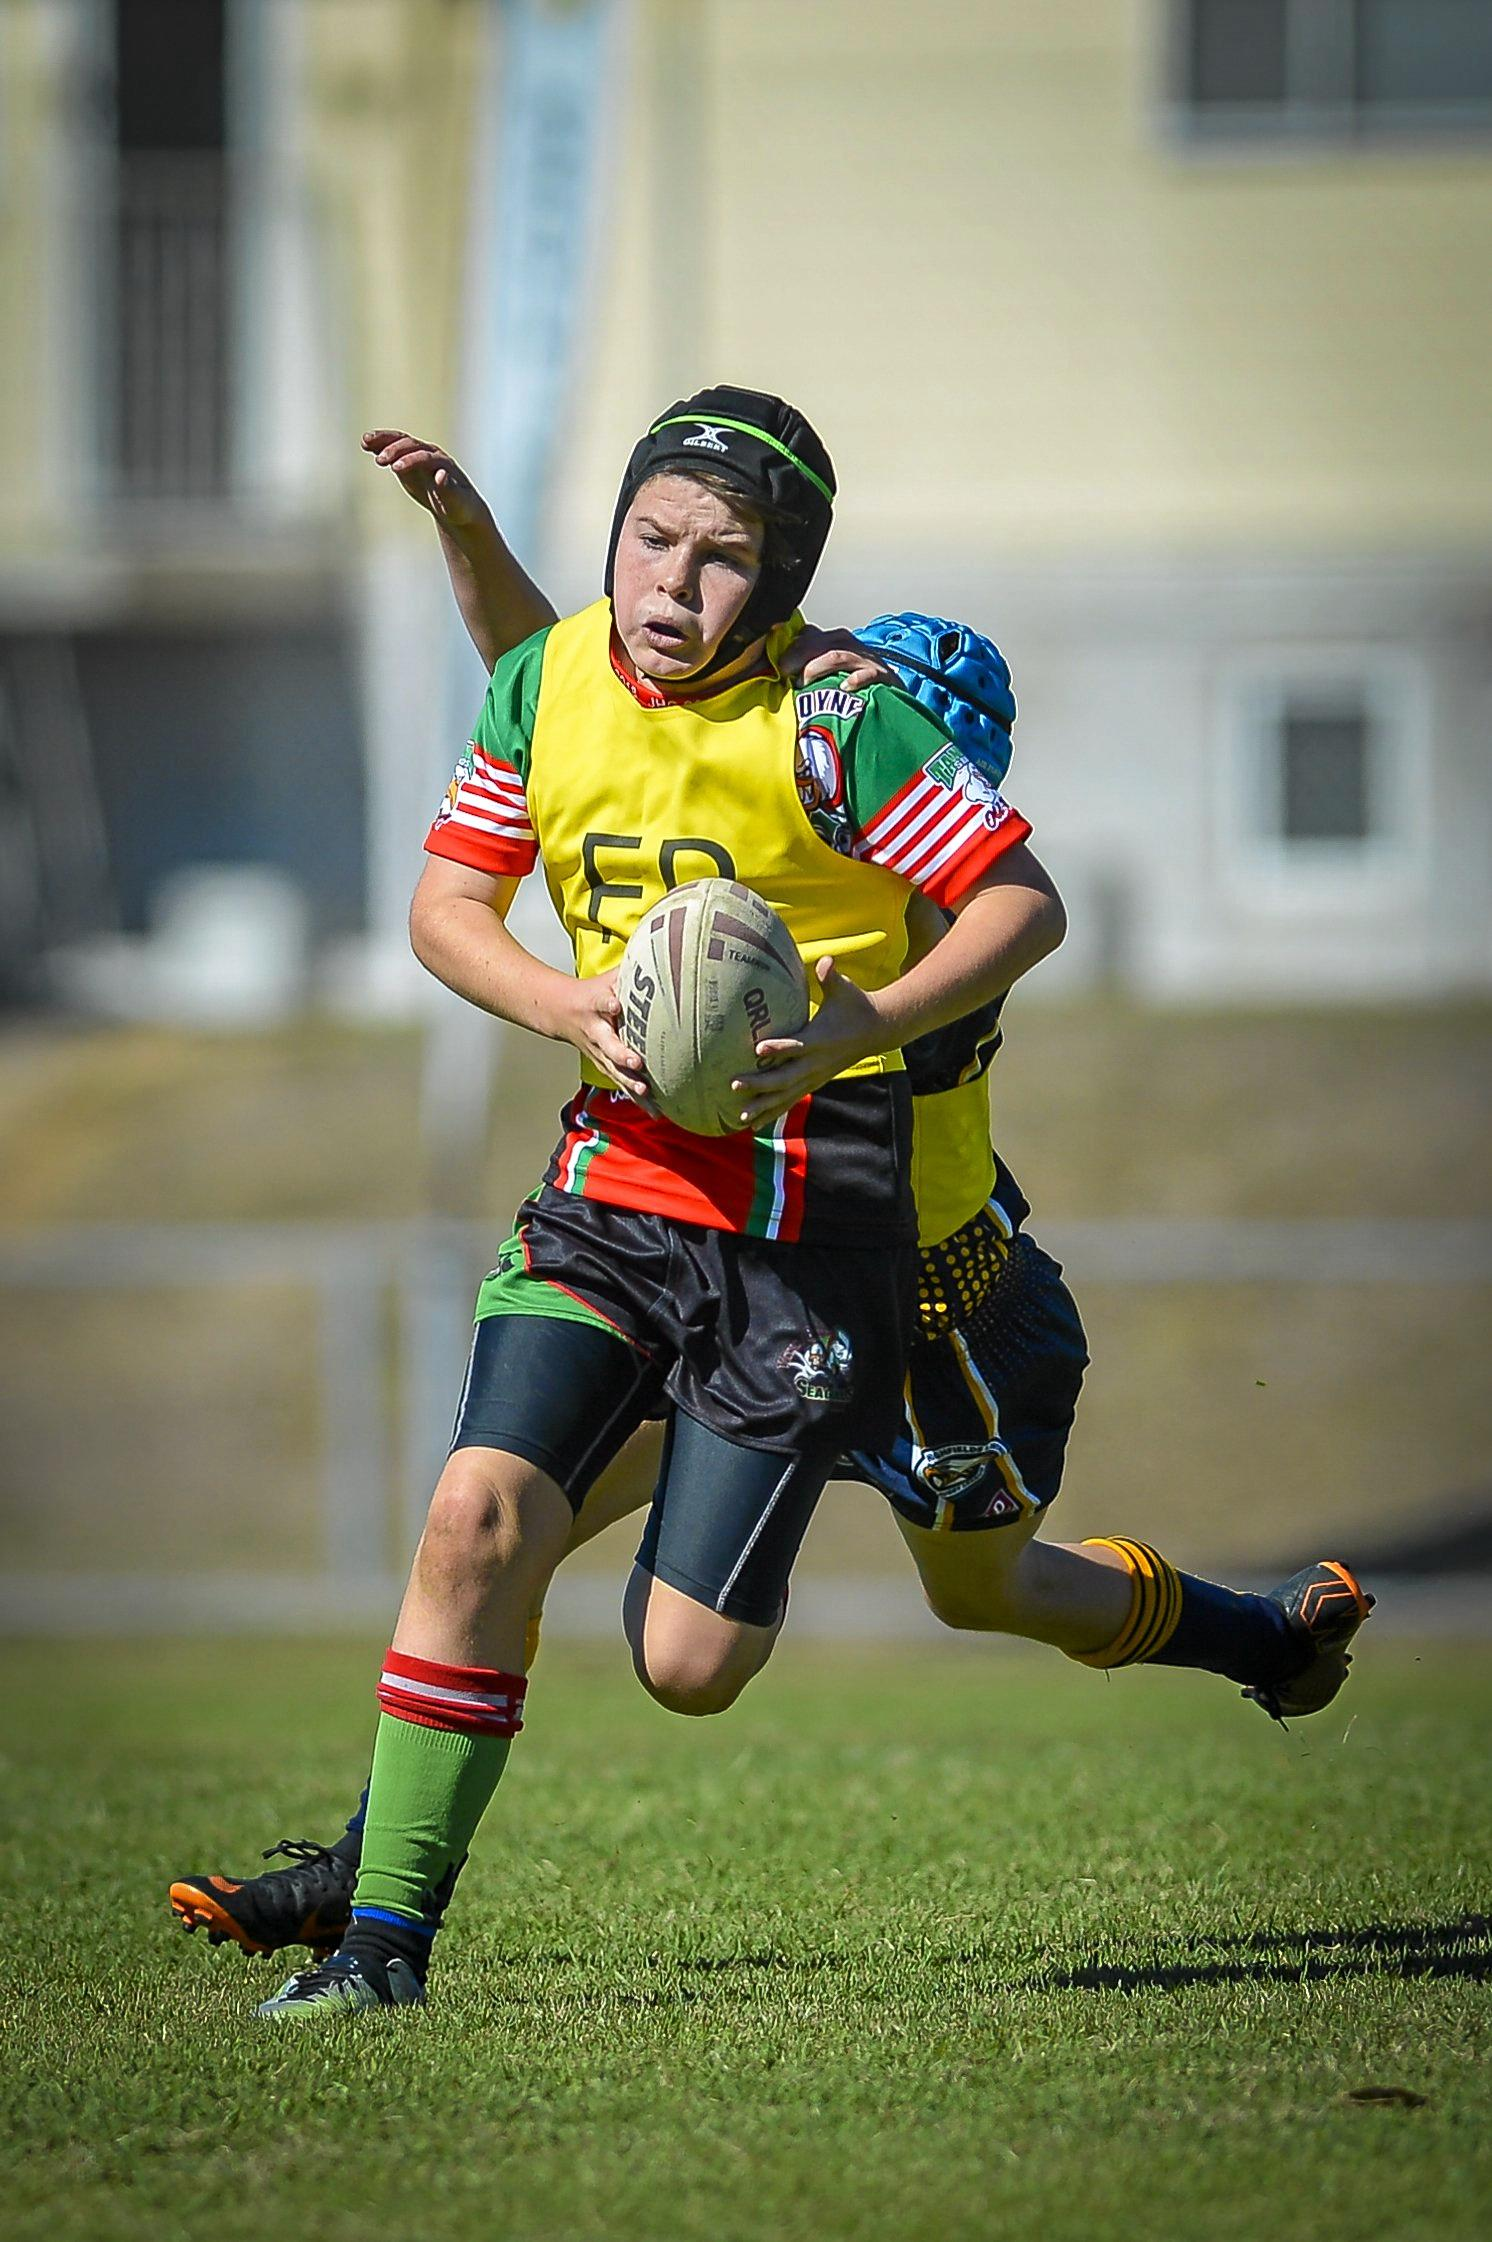 Tannum Seagulls player Josh McLeish during the Hetherington Cup at Marley Brown oval on 13 July 2018.